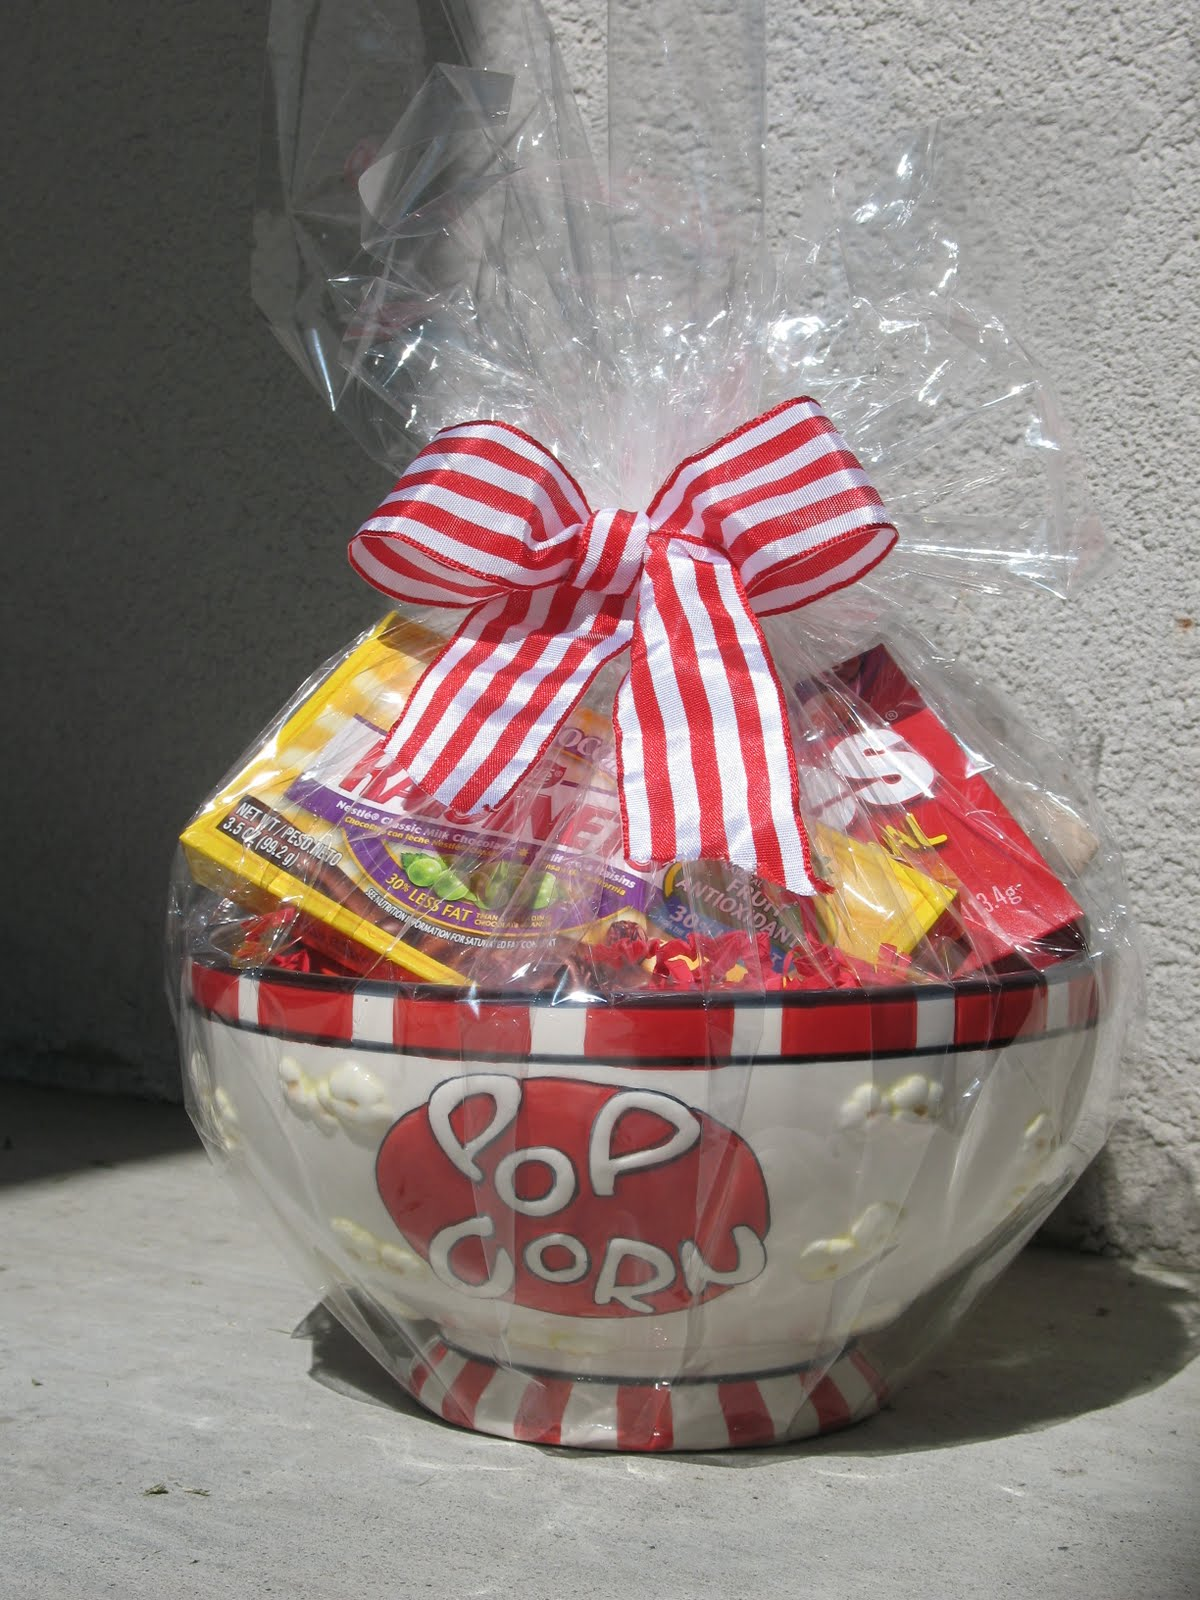 A Wedding Gift Movie : The Craft Patch: Wedding Gift: Movie Night Gift Basket